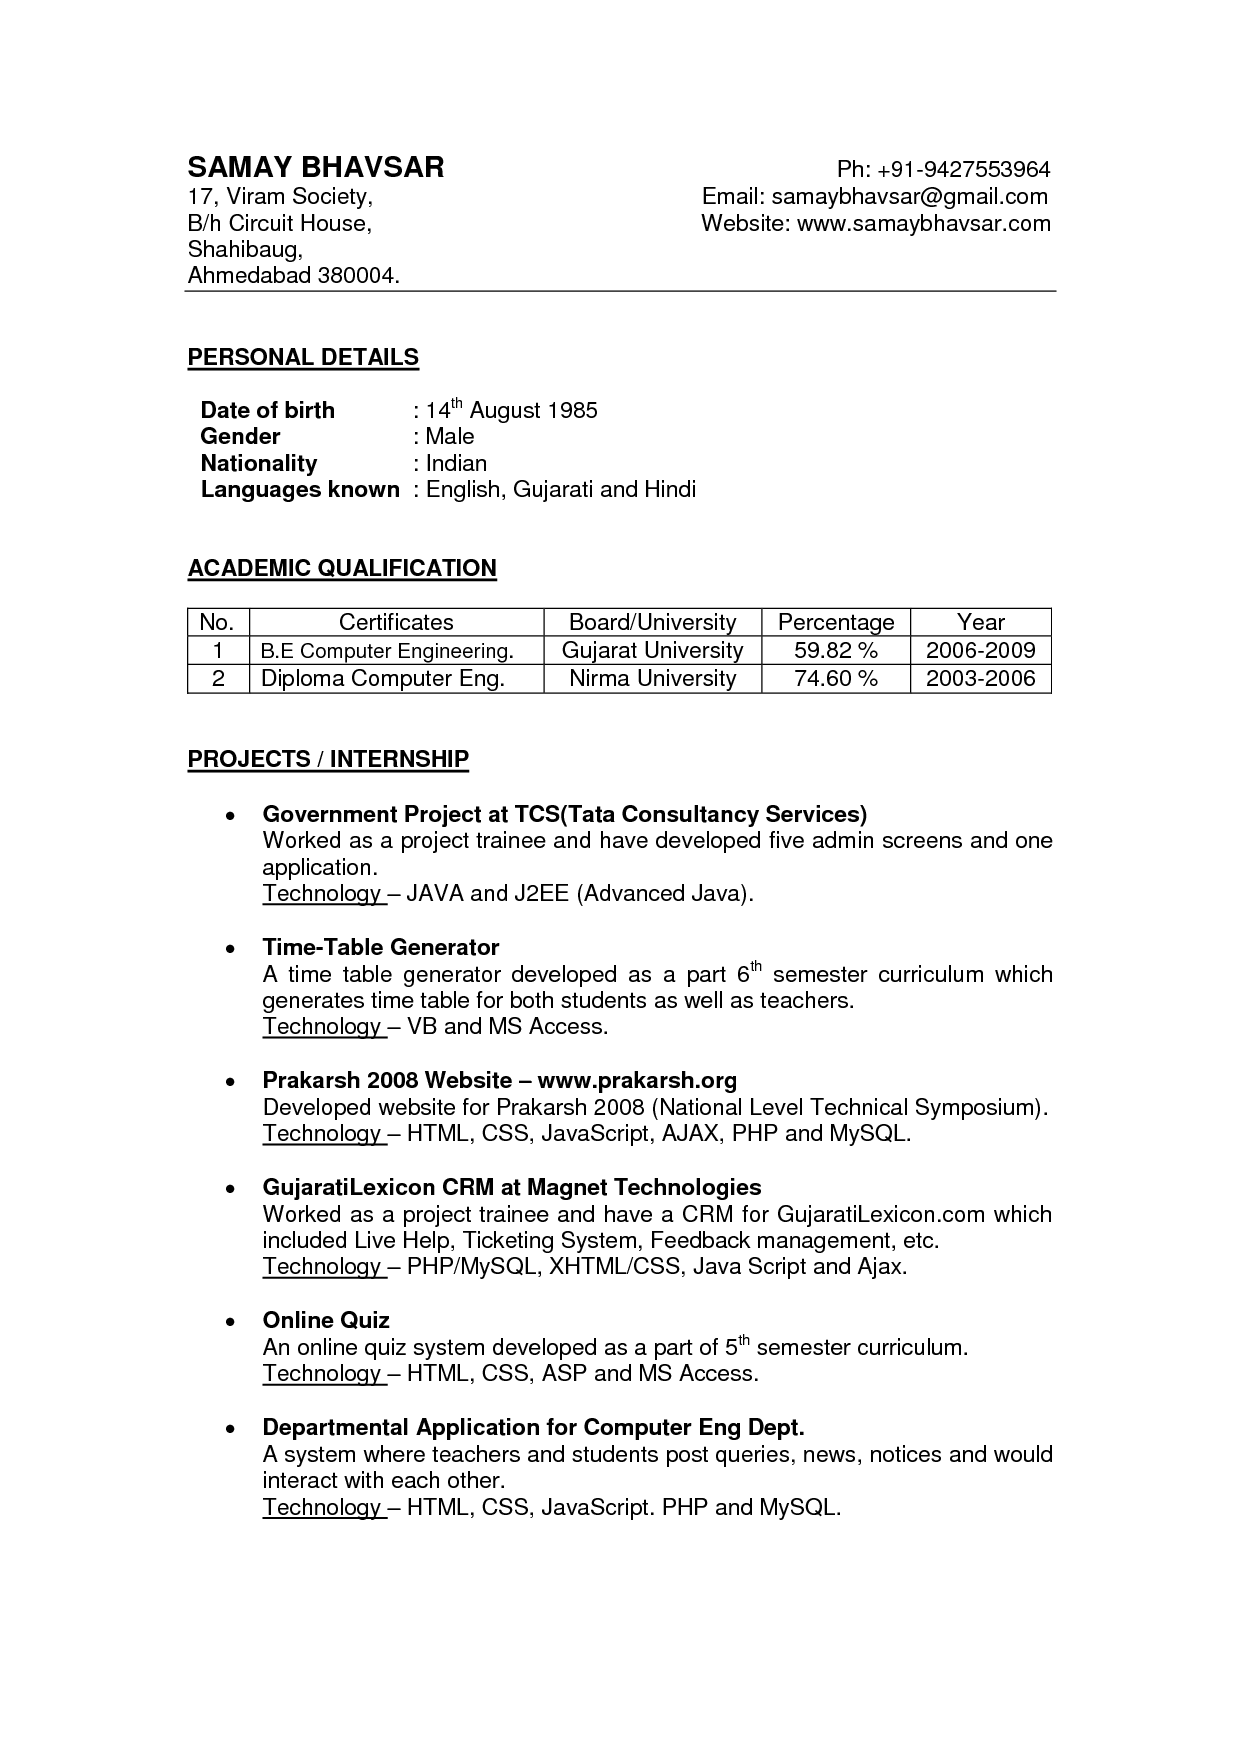 Free Resume Templates India Freeresumetemplates India Resume